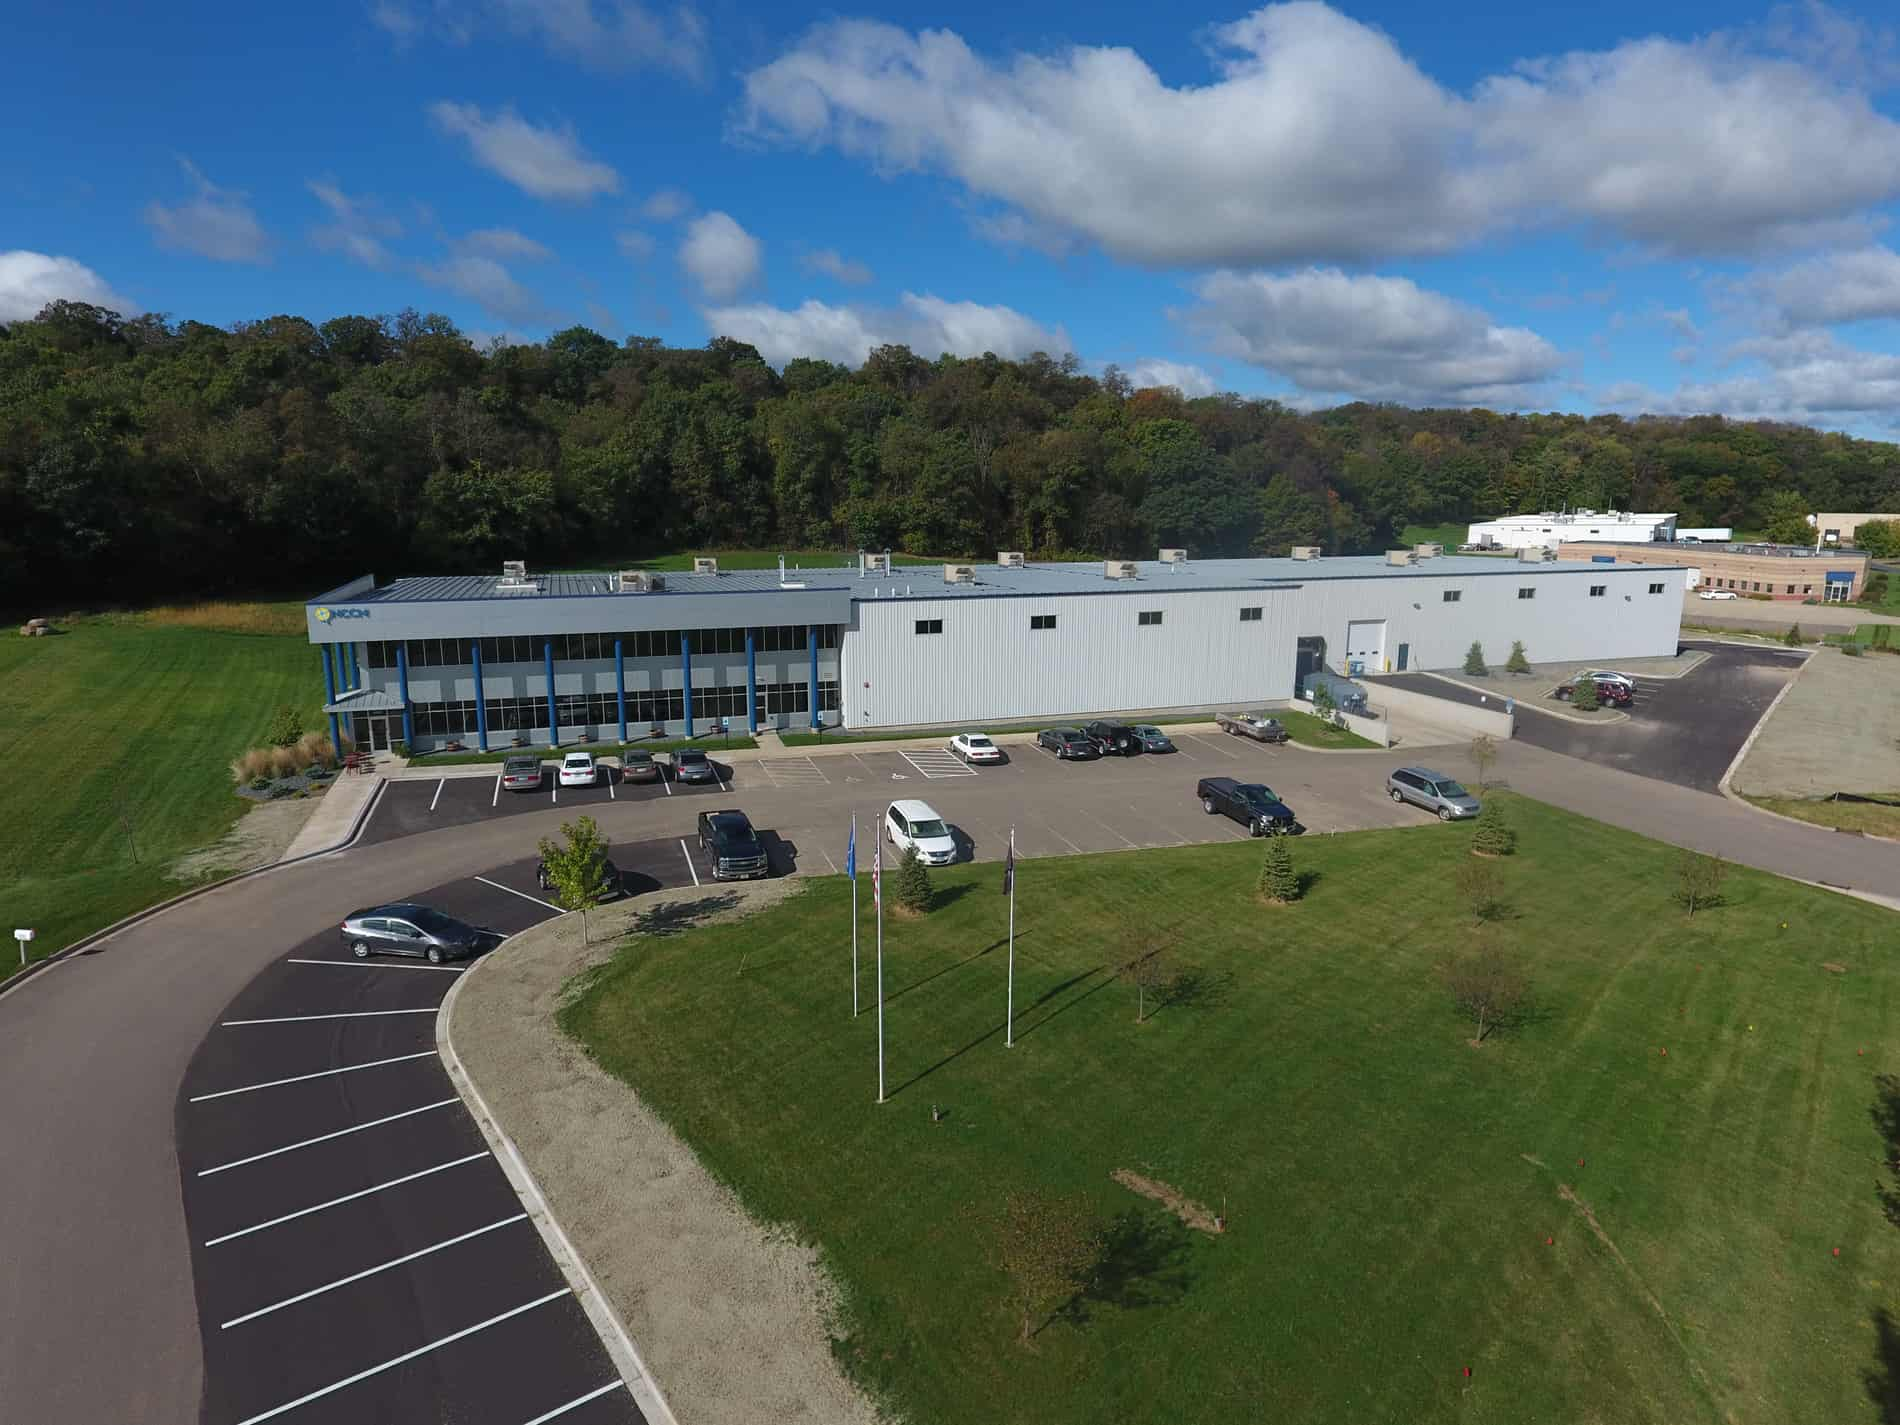 NCCM company of River Falls WI built by Derrick Building Solutions